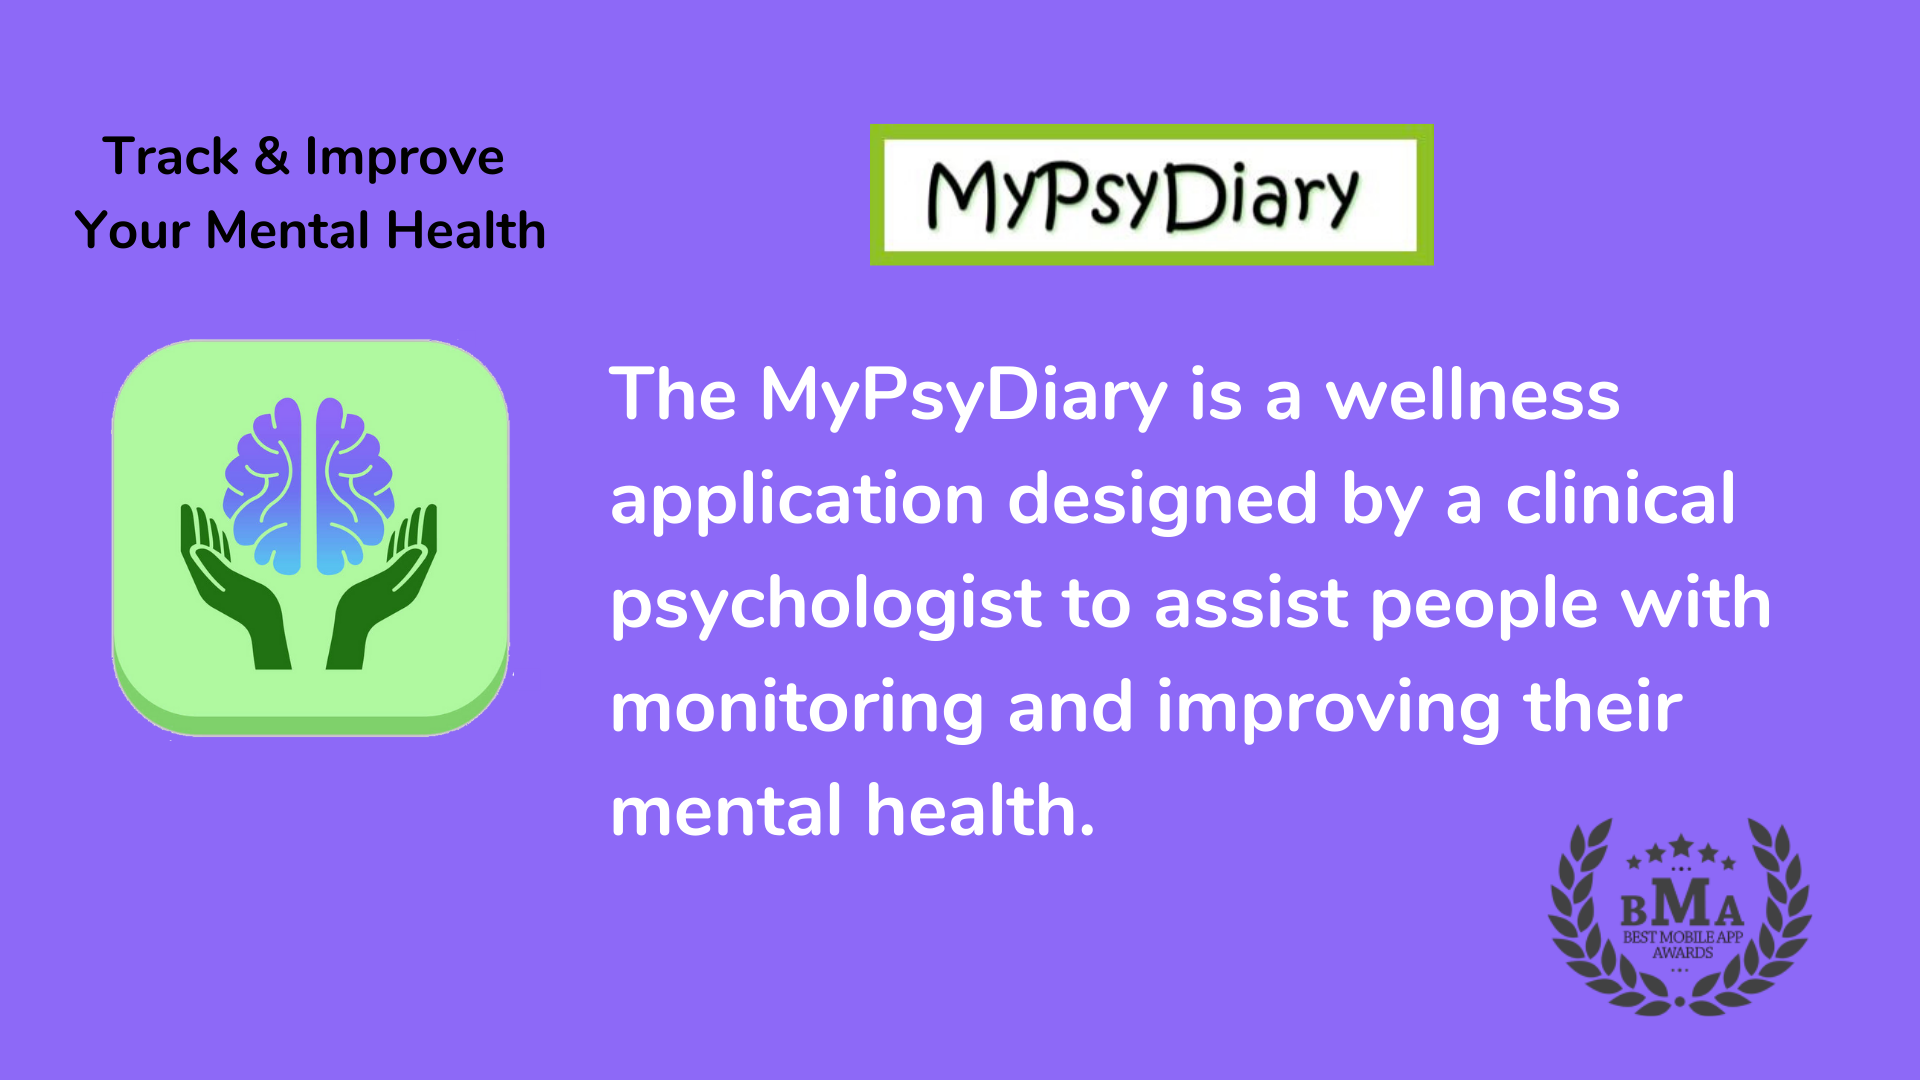 MyPsyDiary: Award Winning Mental Health App!